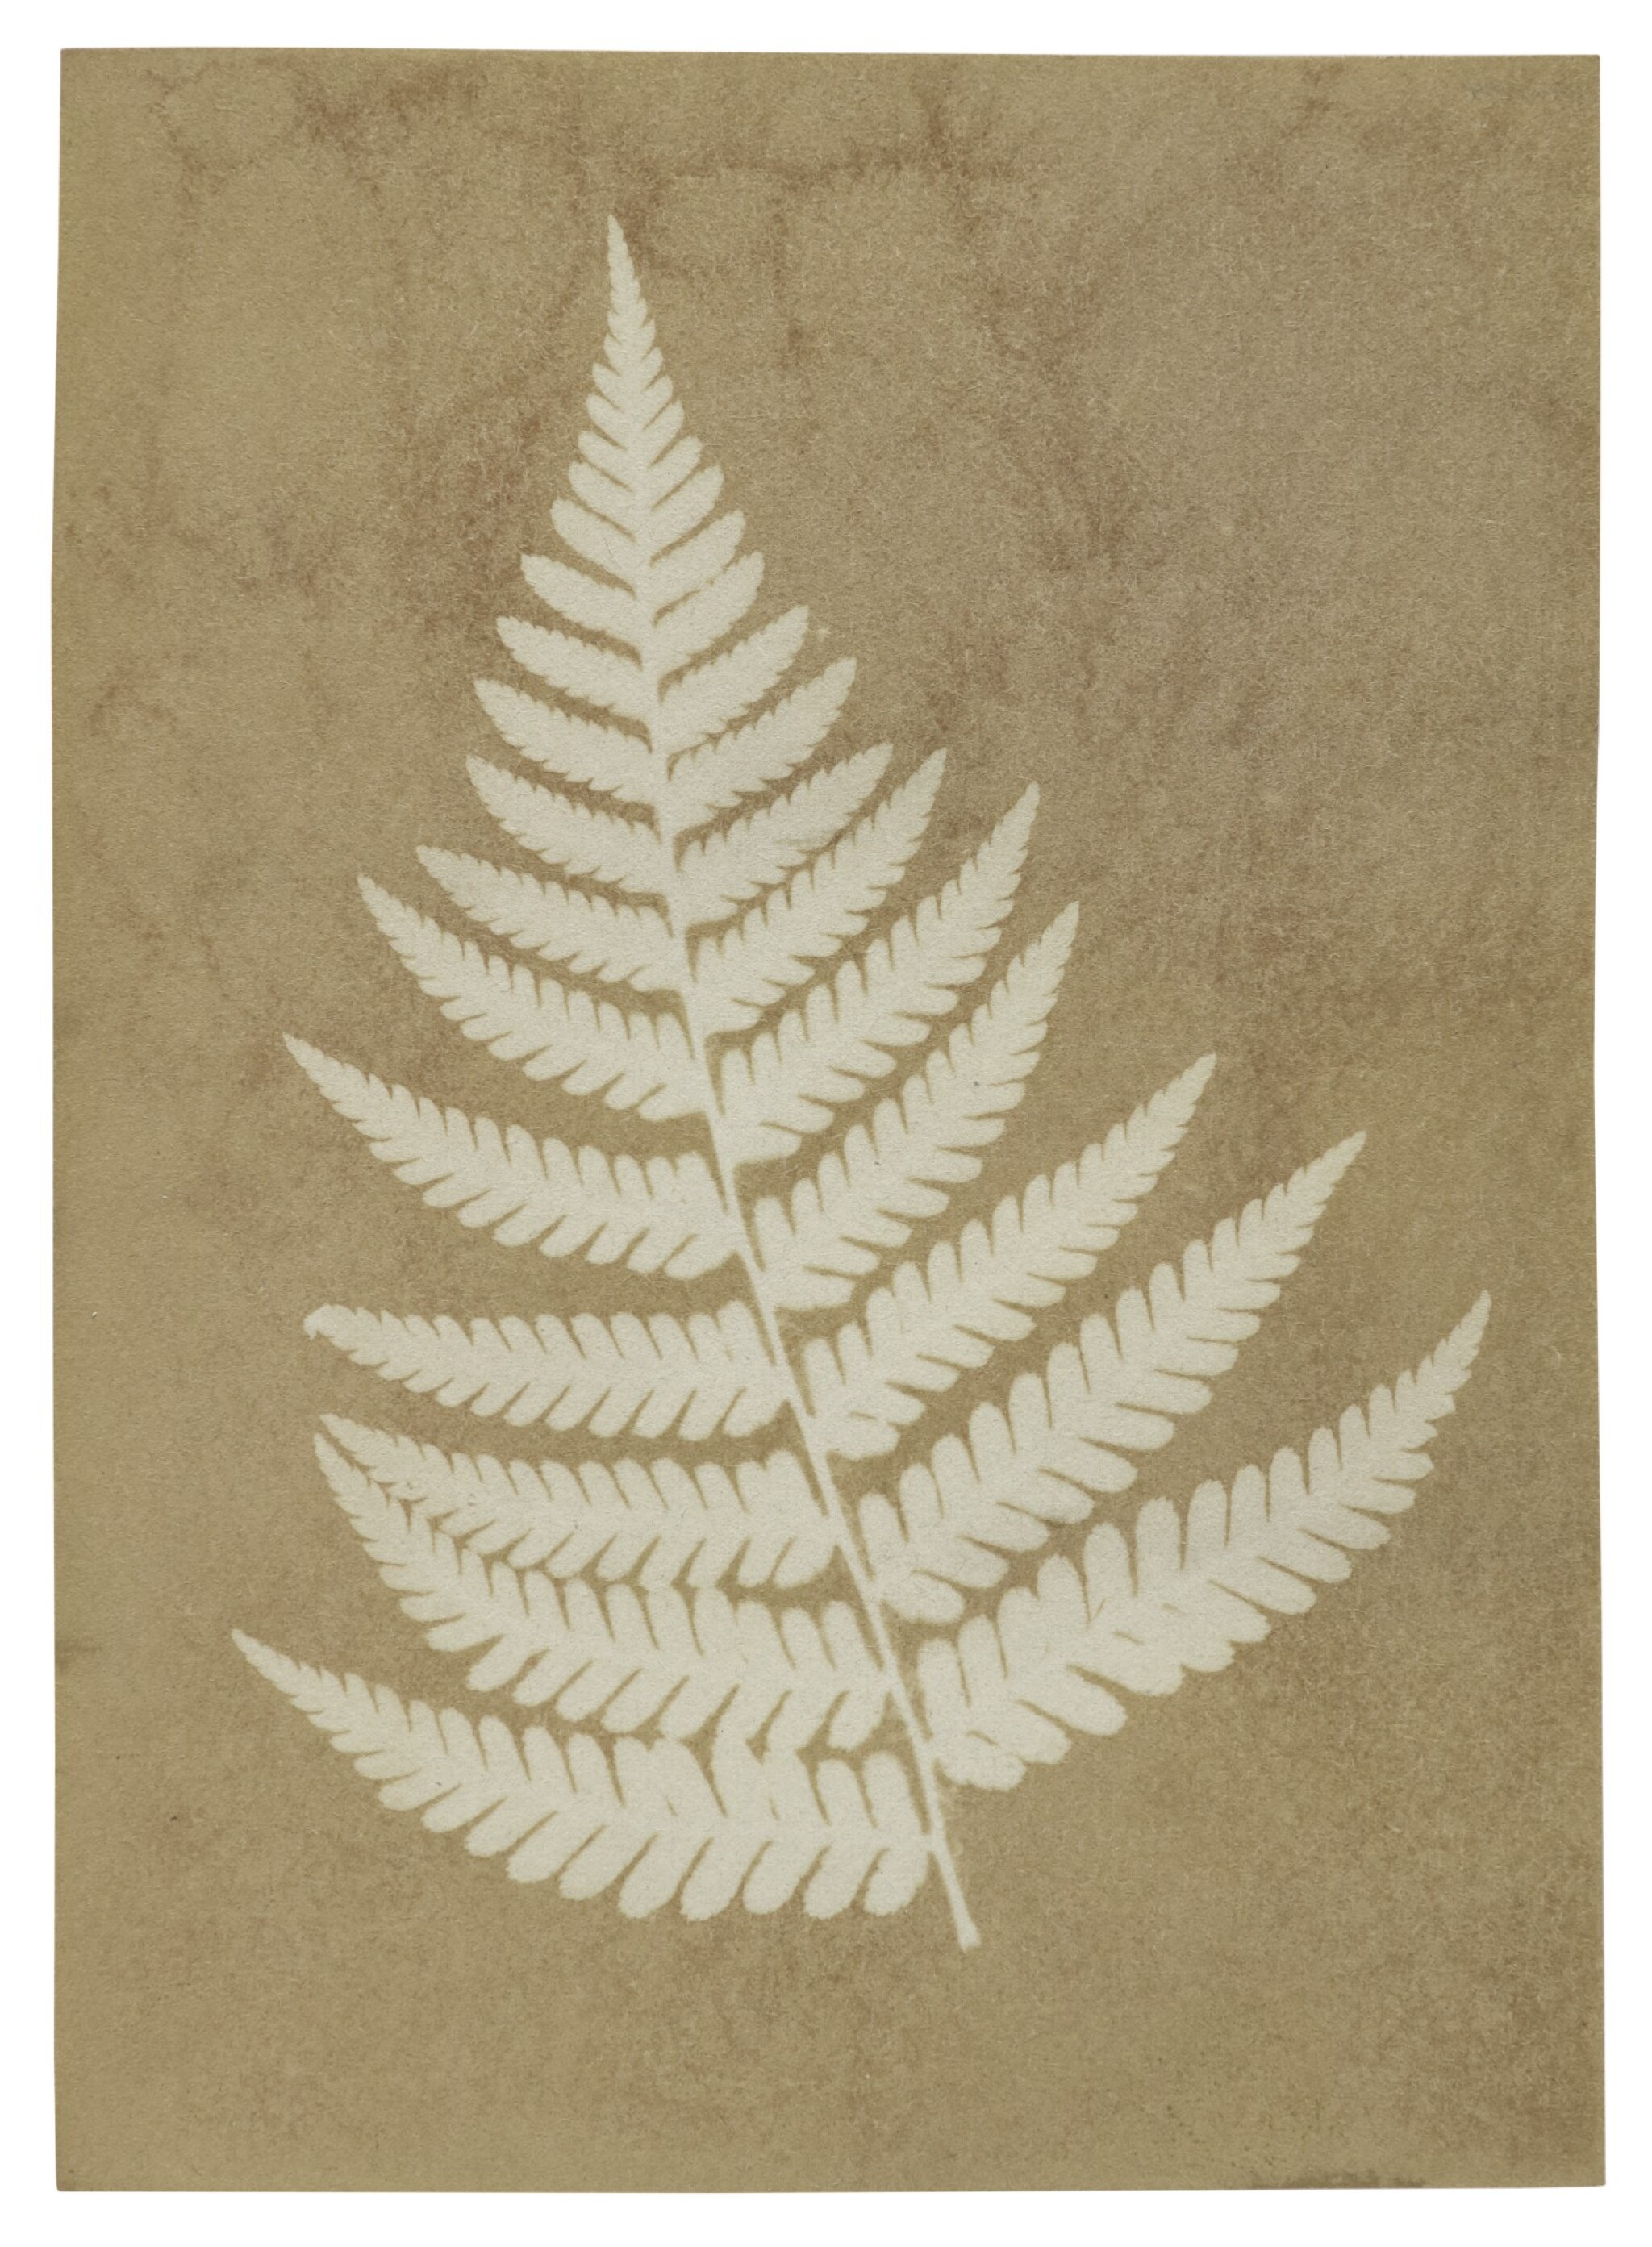 """View full screen - View 1 of Lot 89. TAYLOR, ALFRED SWAINE   Early """"photogenic drawing"""" photograph of a fern, dated on the verso by Taylor, 2 December 1839."""